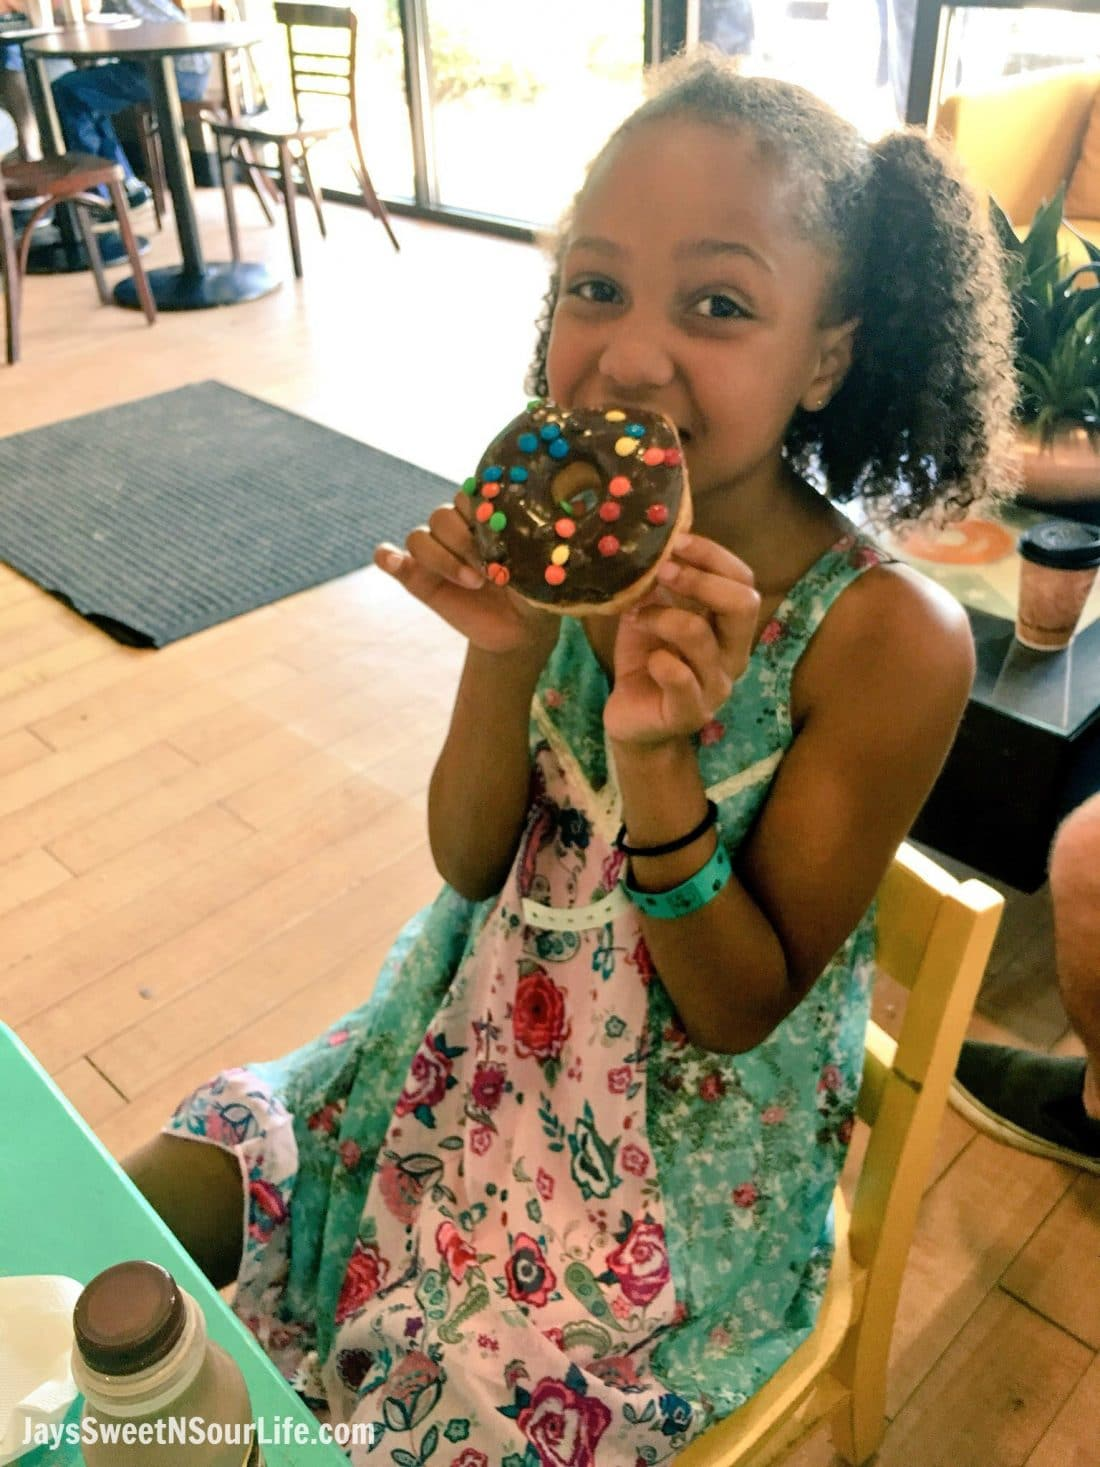 OMG Donuts and Bakery - Visit Cabarrus County Girl eating donut.A Large Families Adventure Guide To Cabarrus County - North Carolina - via JaysSweetNSourLife.com.